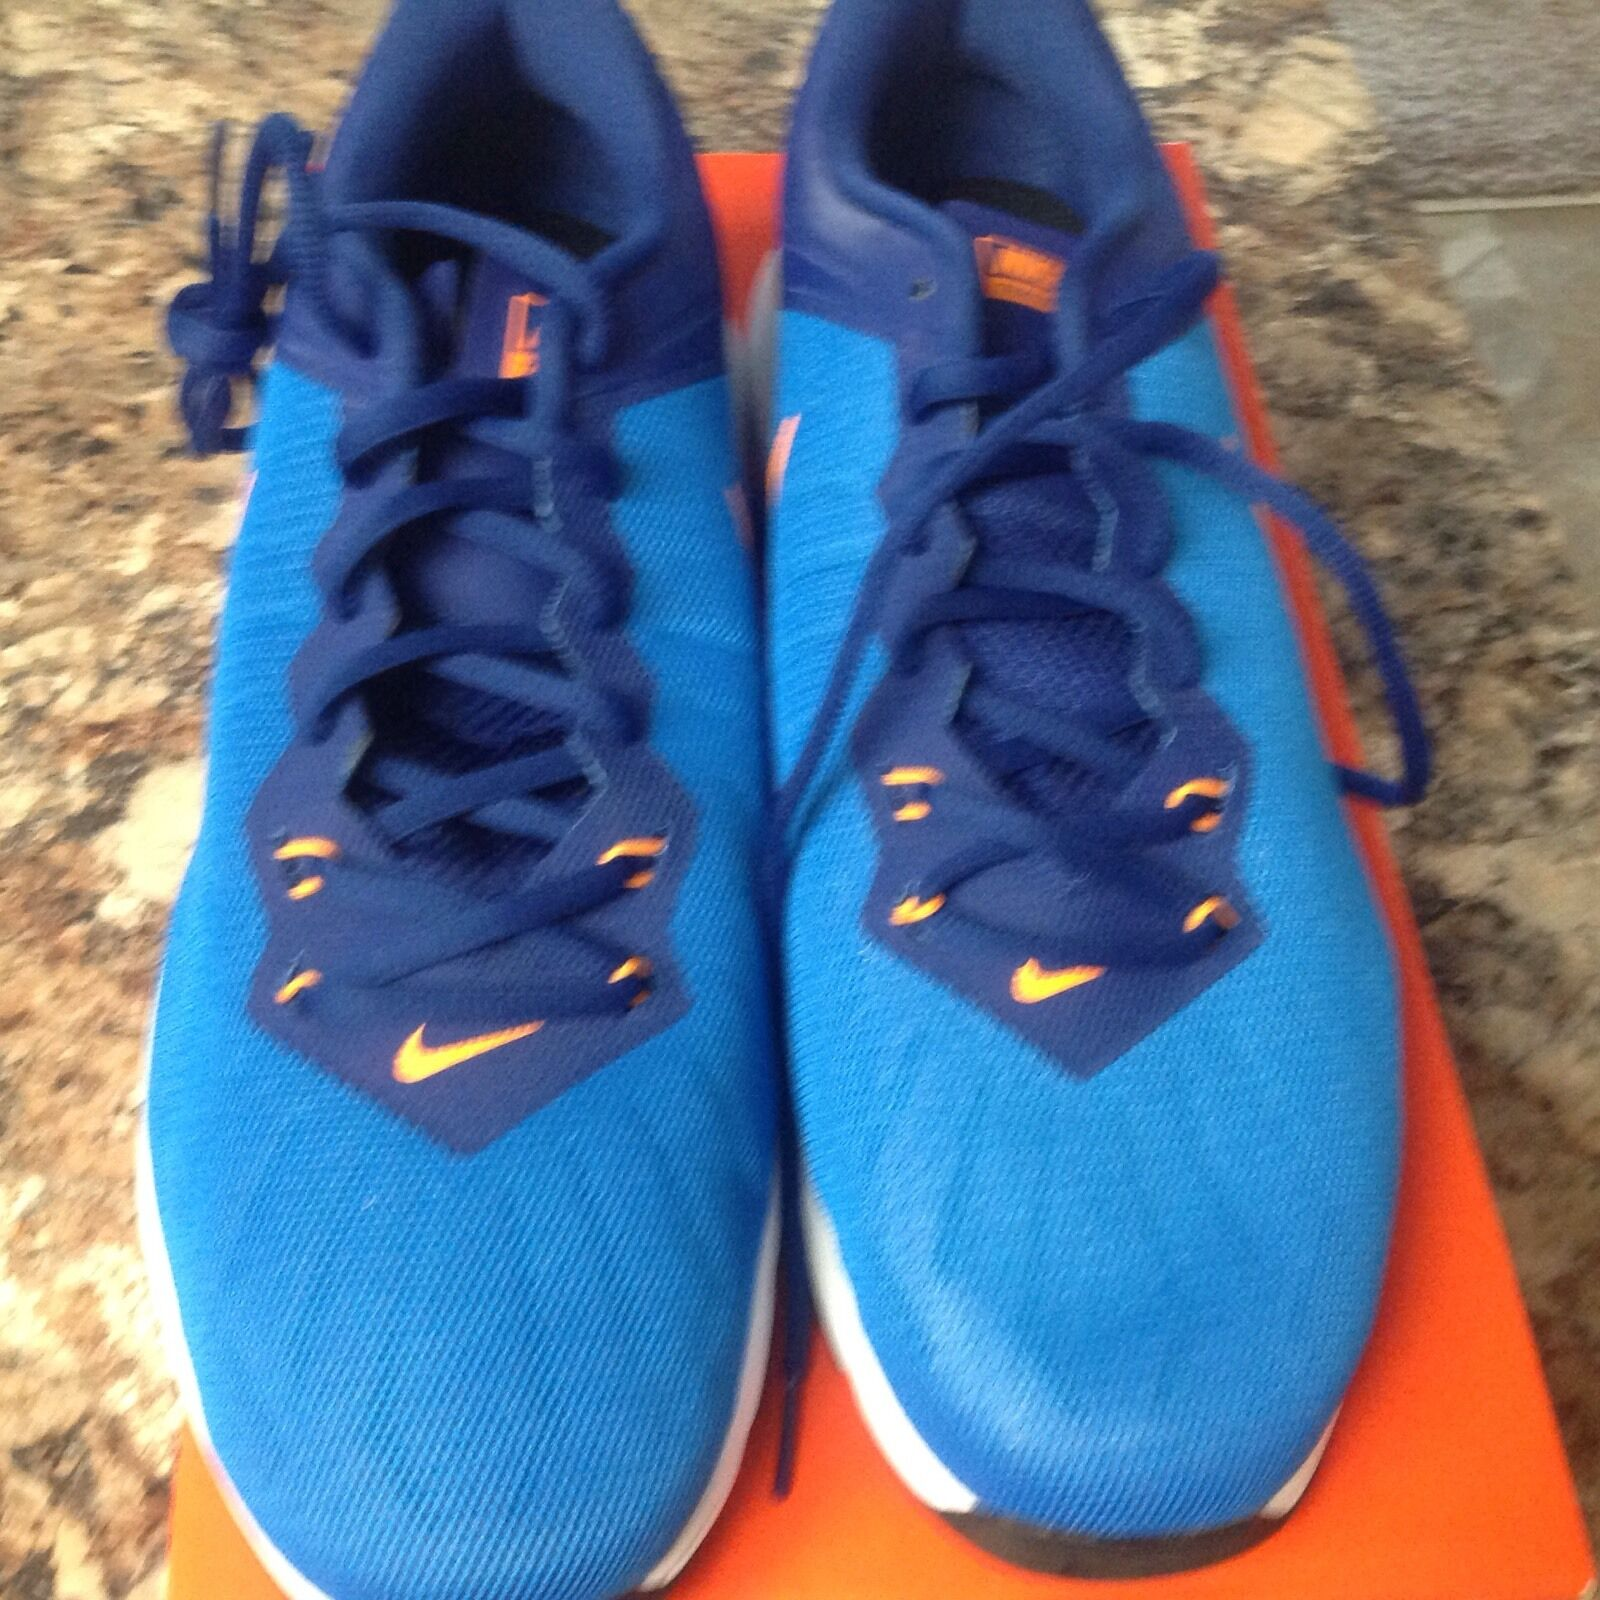 NEW Men's Nike Air Max Full Ride TR Training Shoes Blue/Orange 819004-400 Sz 13